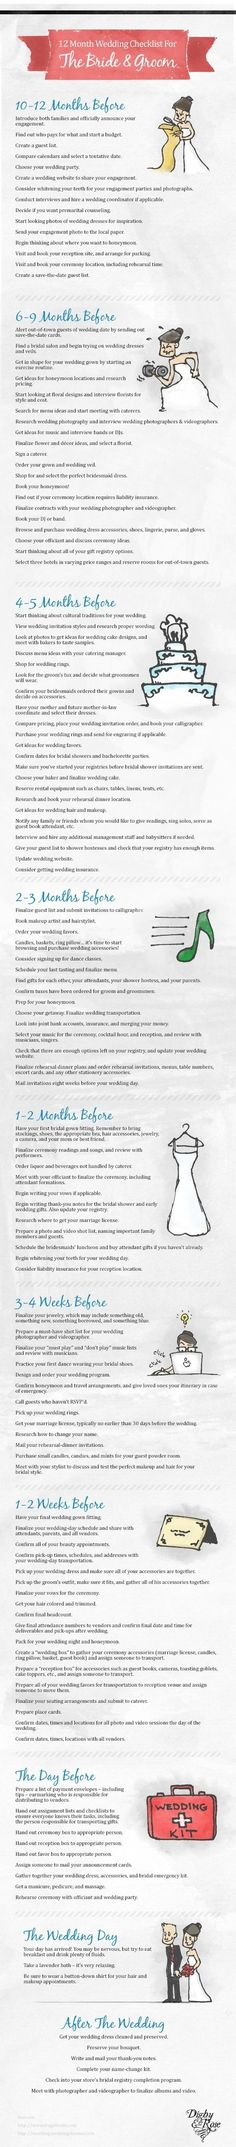 perhaps a bit excessive at times, but a helpful wedding checklist!